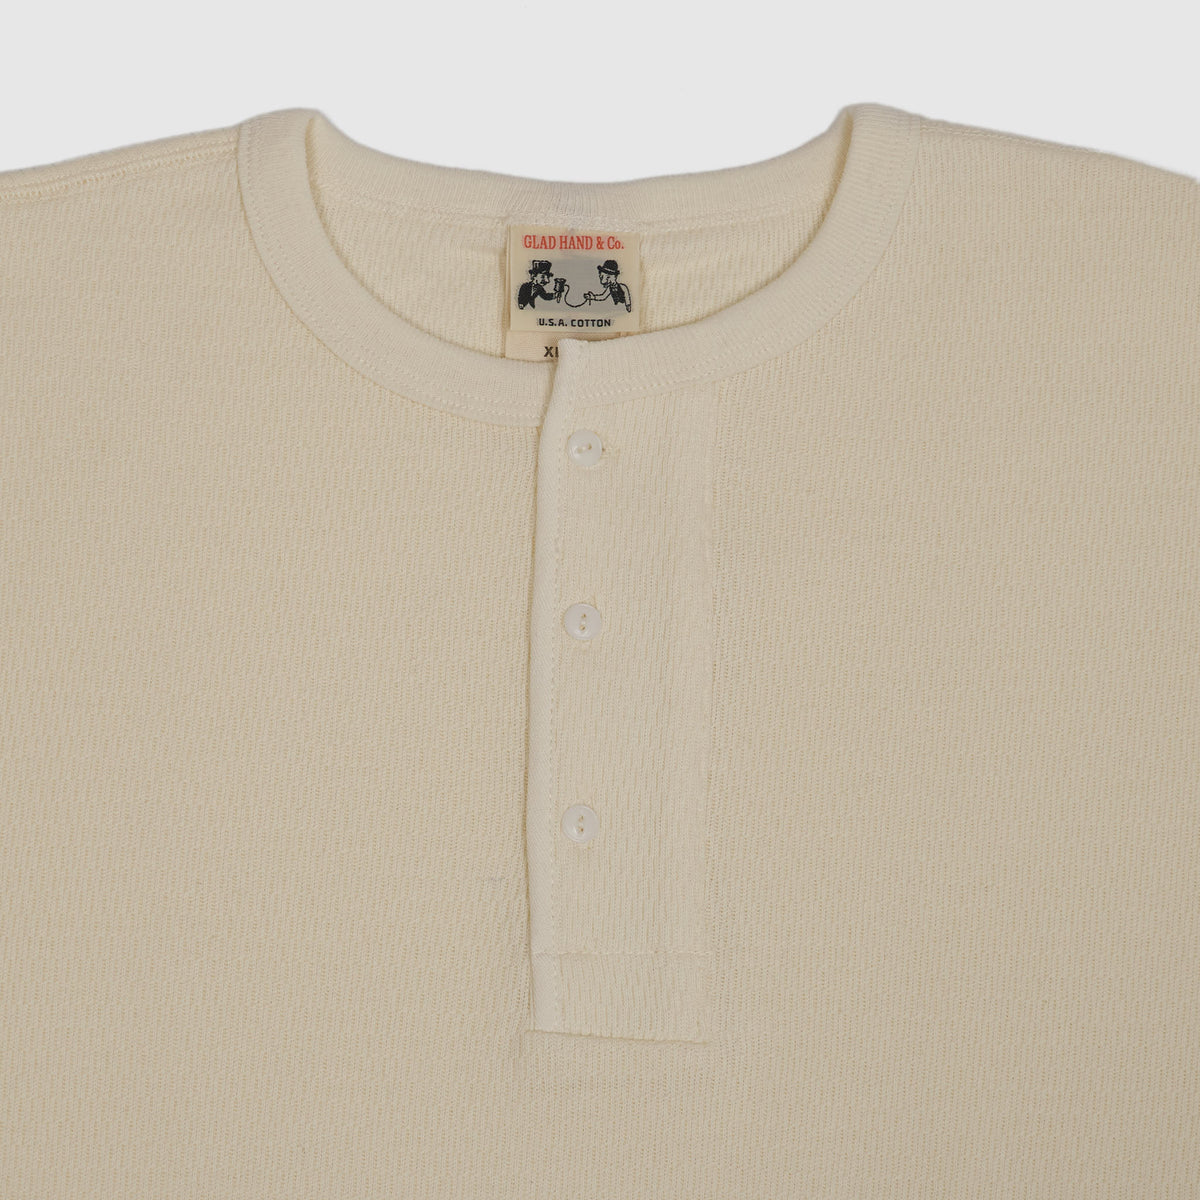 Old Crow Speed Shop by Glad Hand & Co. Longsleeve Henley Waffle Shirt